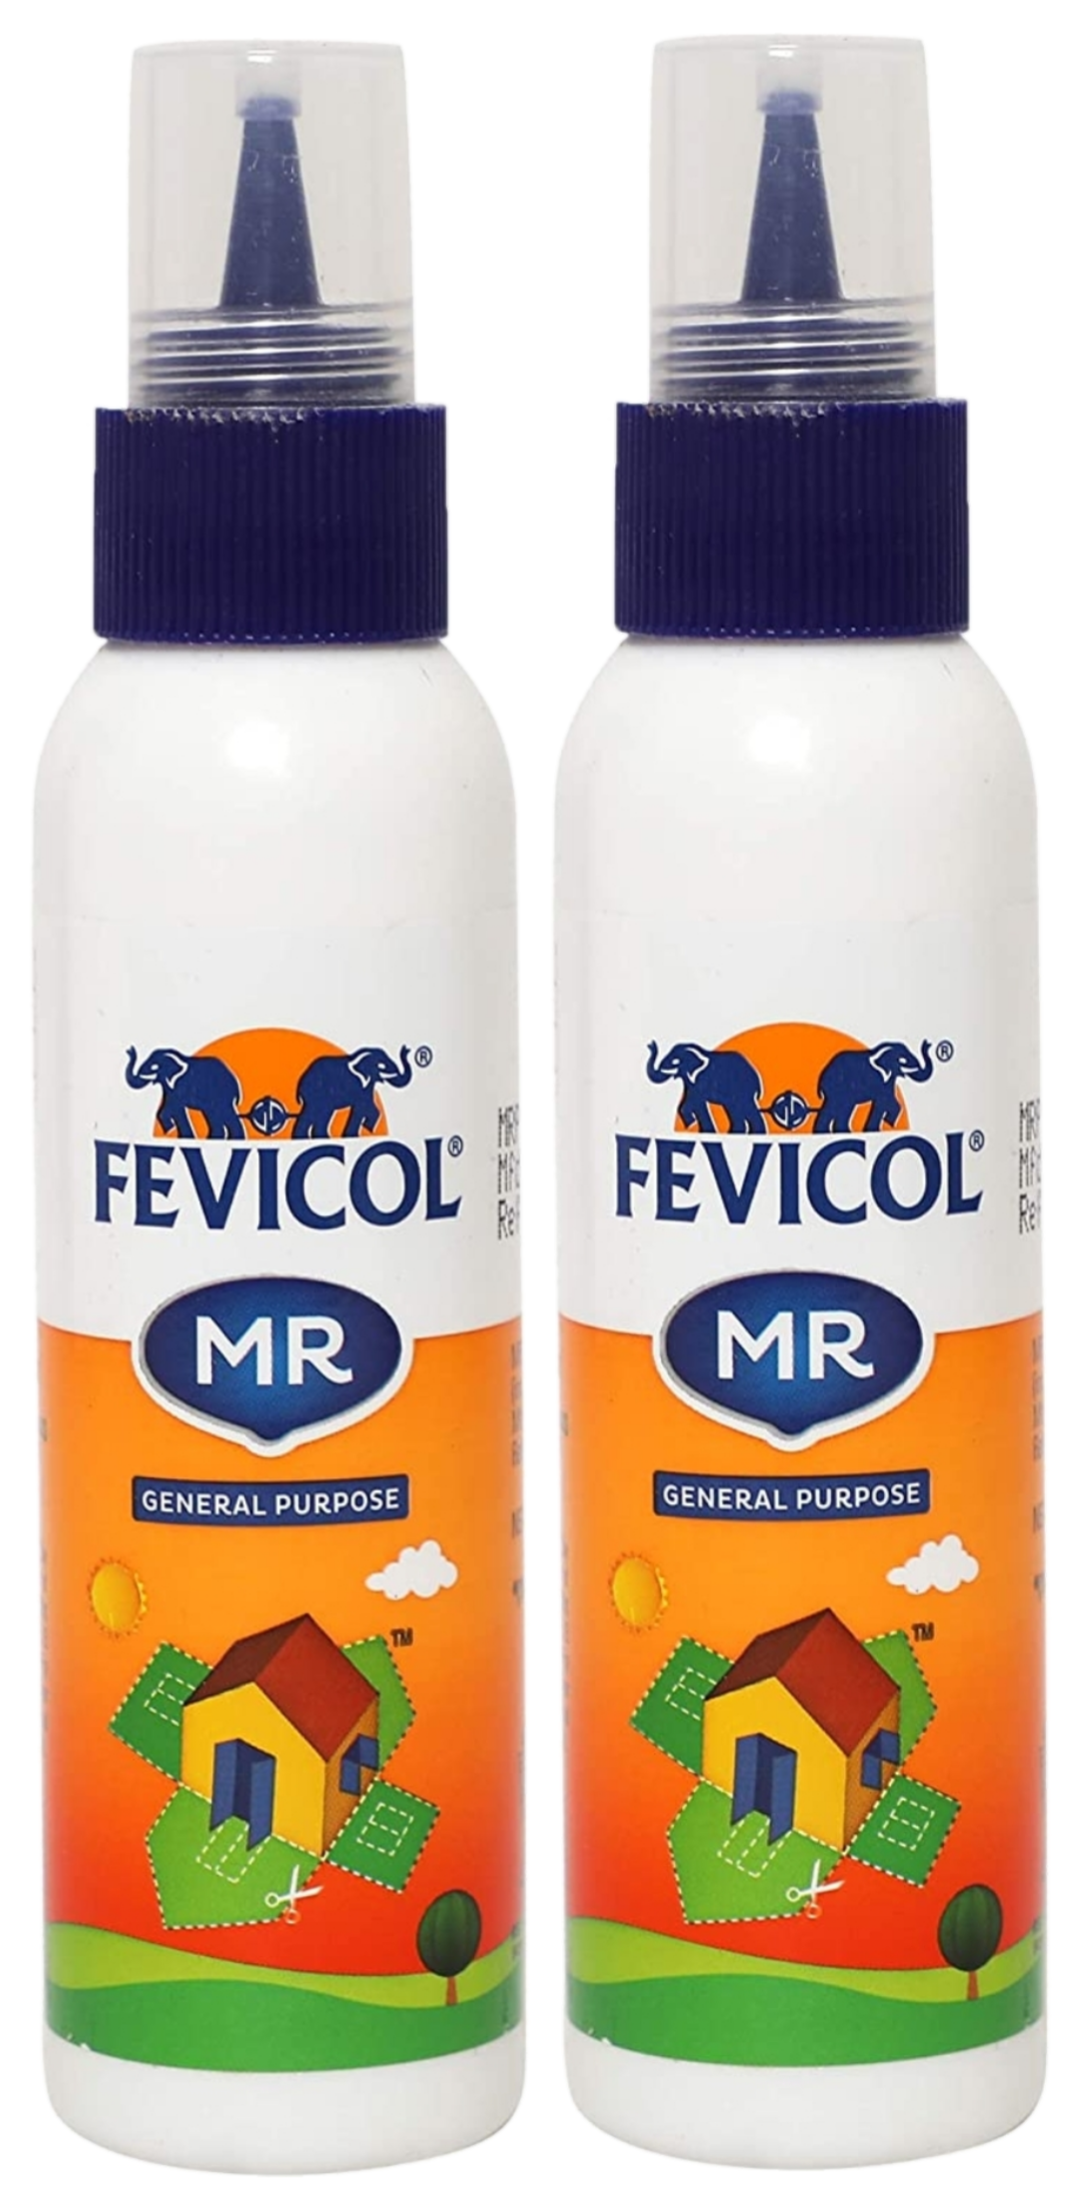 Fevicol MR Easy Flow Squeeze Bottle, 105g Pack of 2